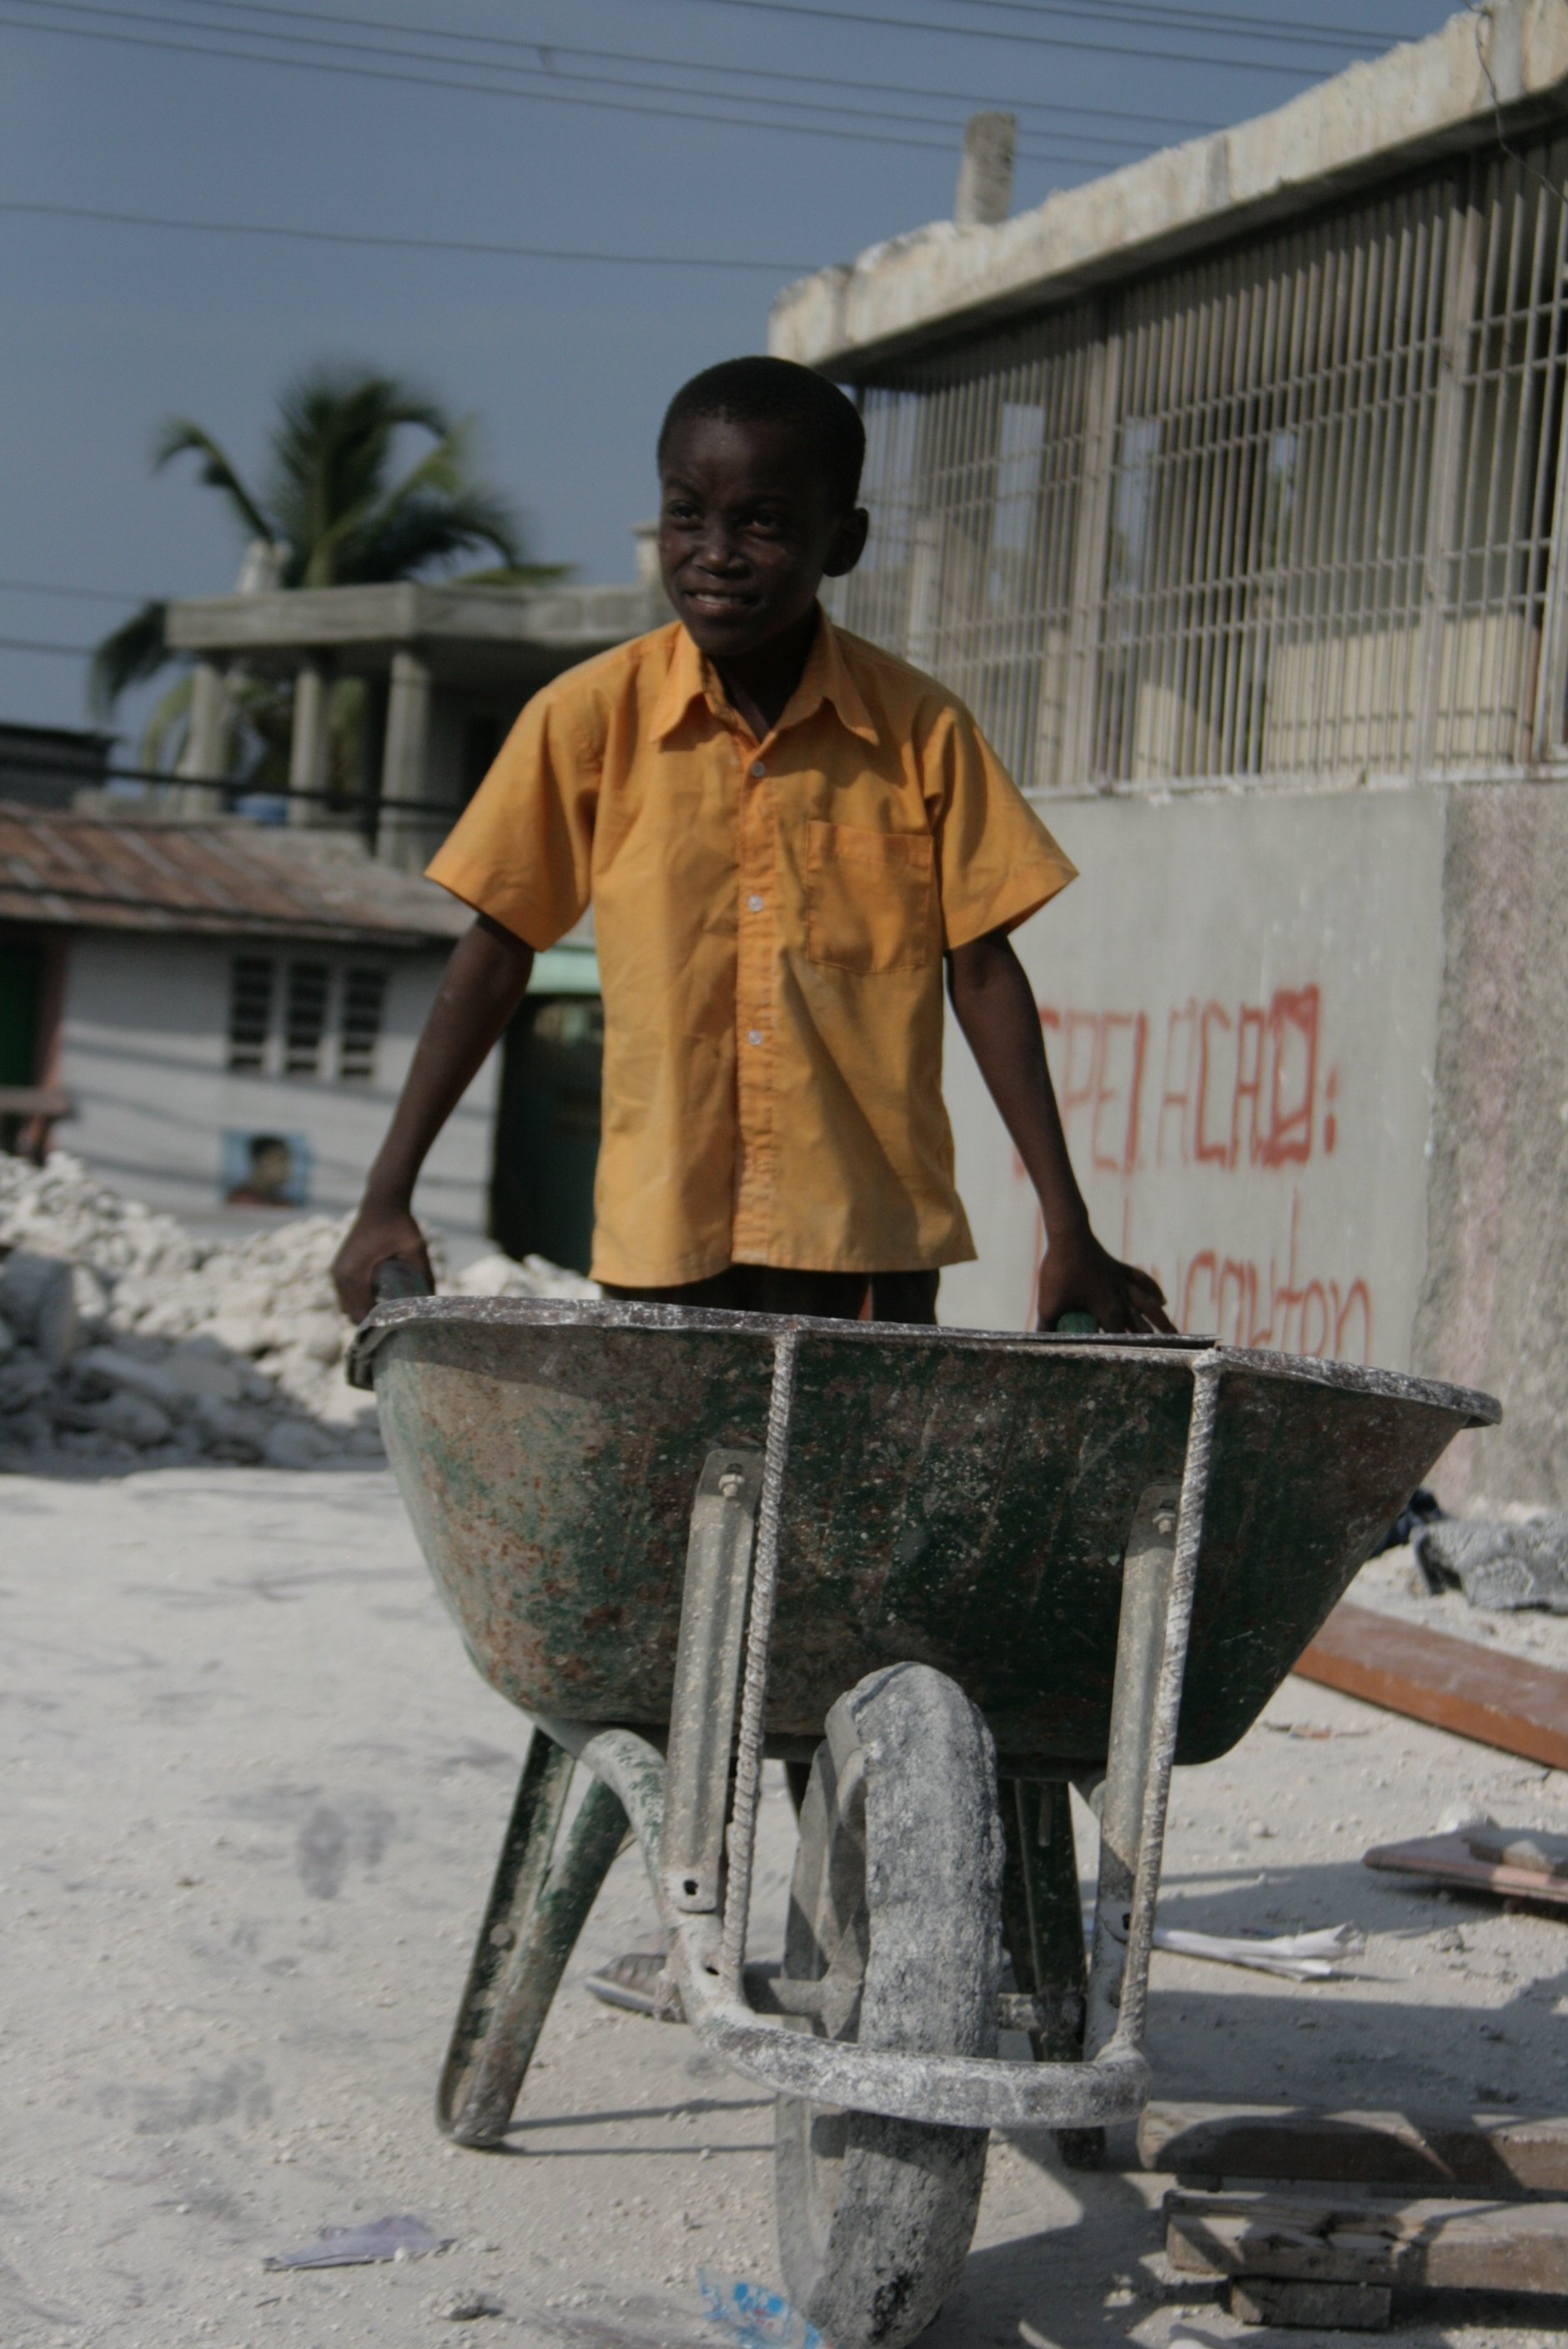 Boy takes part in cleaning up earthquake rubble at a church/school building in the Martissant neighbourhood of Port-au-Prince. March 2010